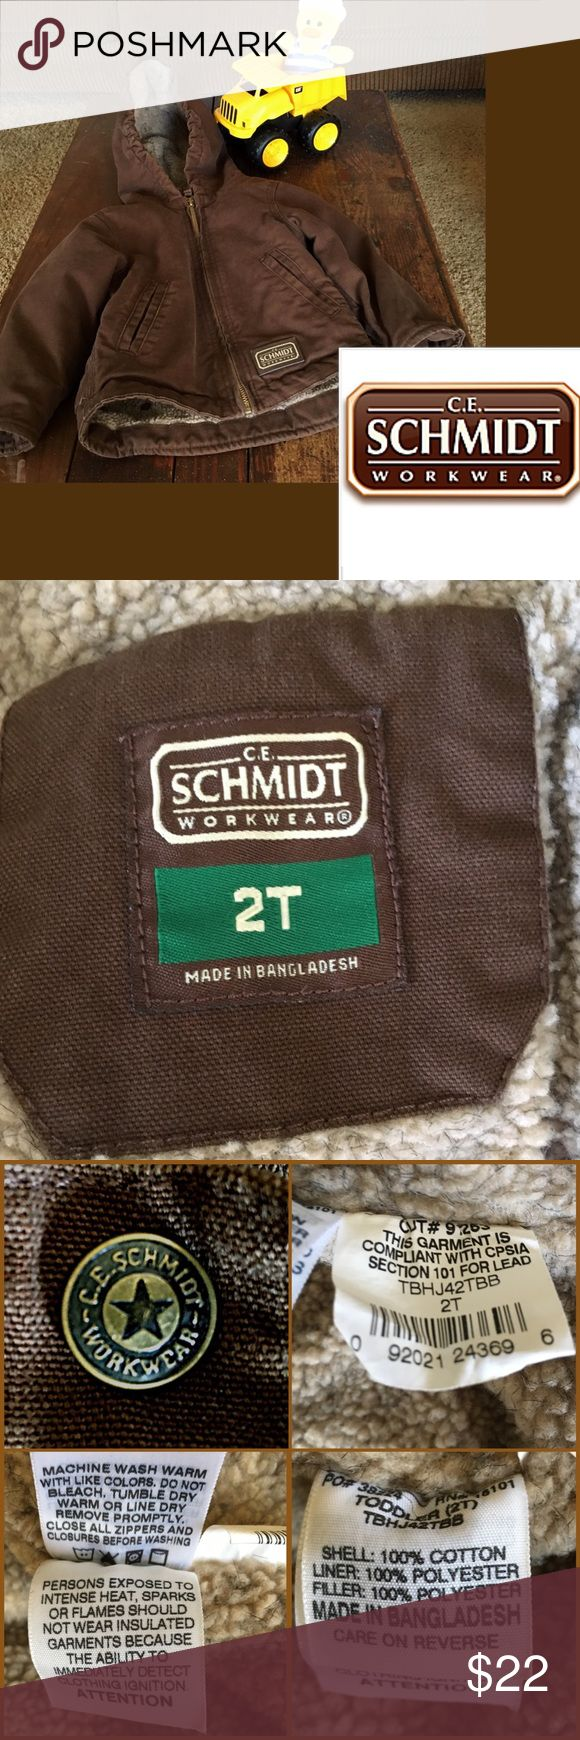 """Canvas Winter Coat by C.E. Schmidt Workwear """"sherpa"""" lined 